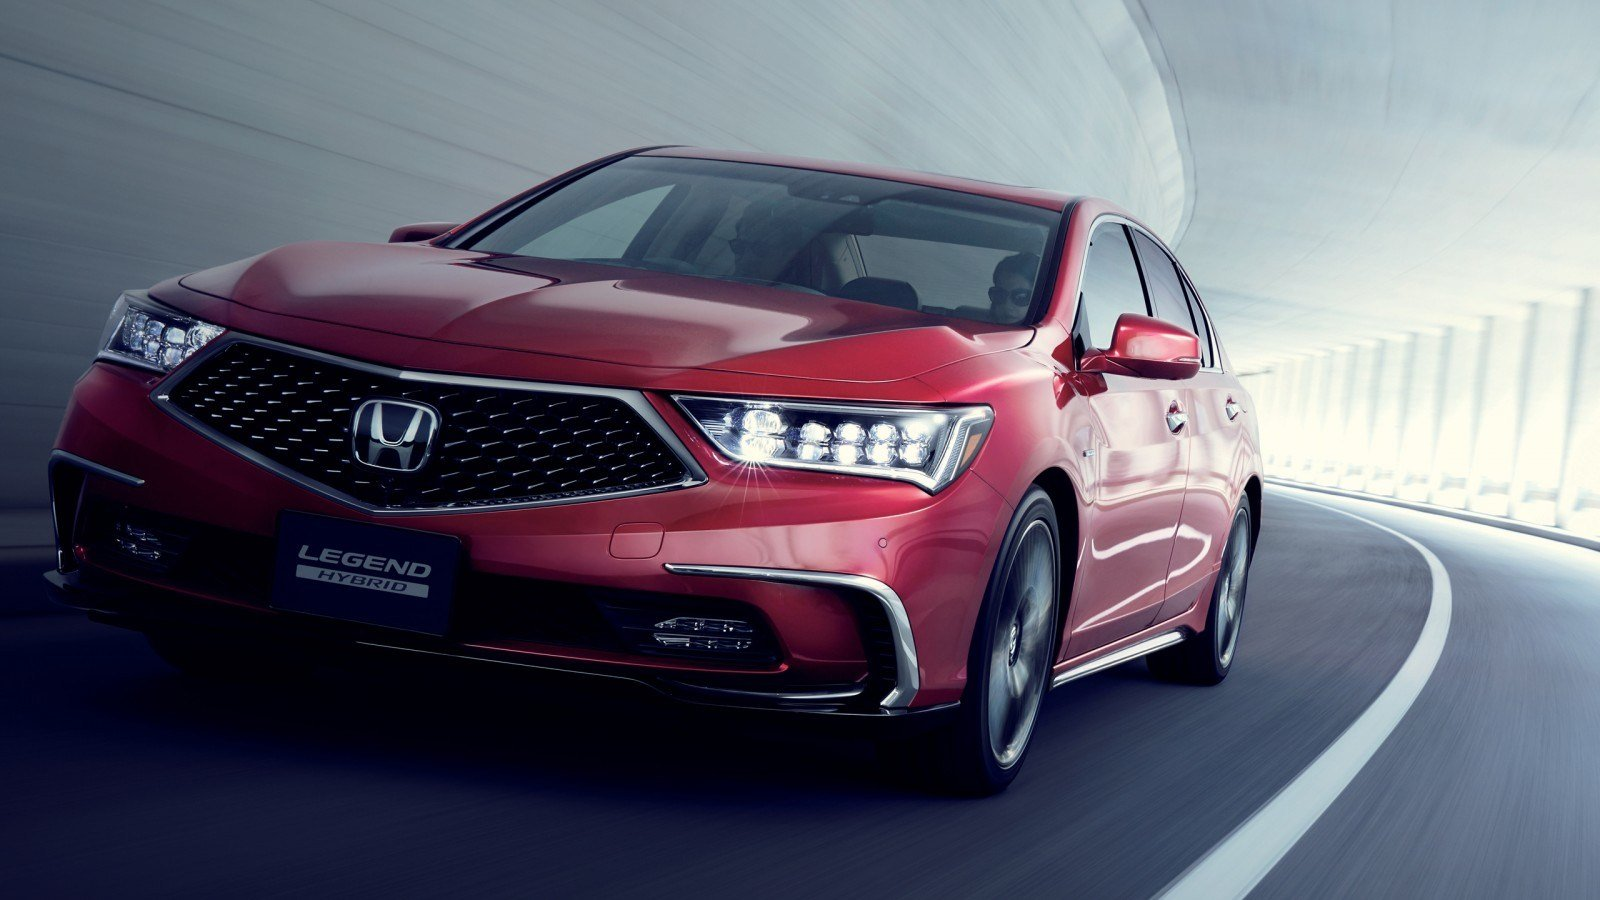 New 2019 Honda Legend Hybrid Wallpaper Hd Car Wallpapers On This Month